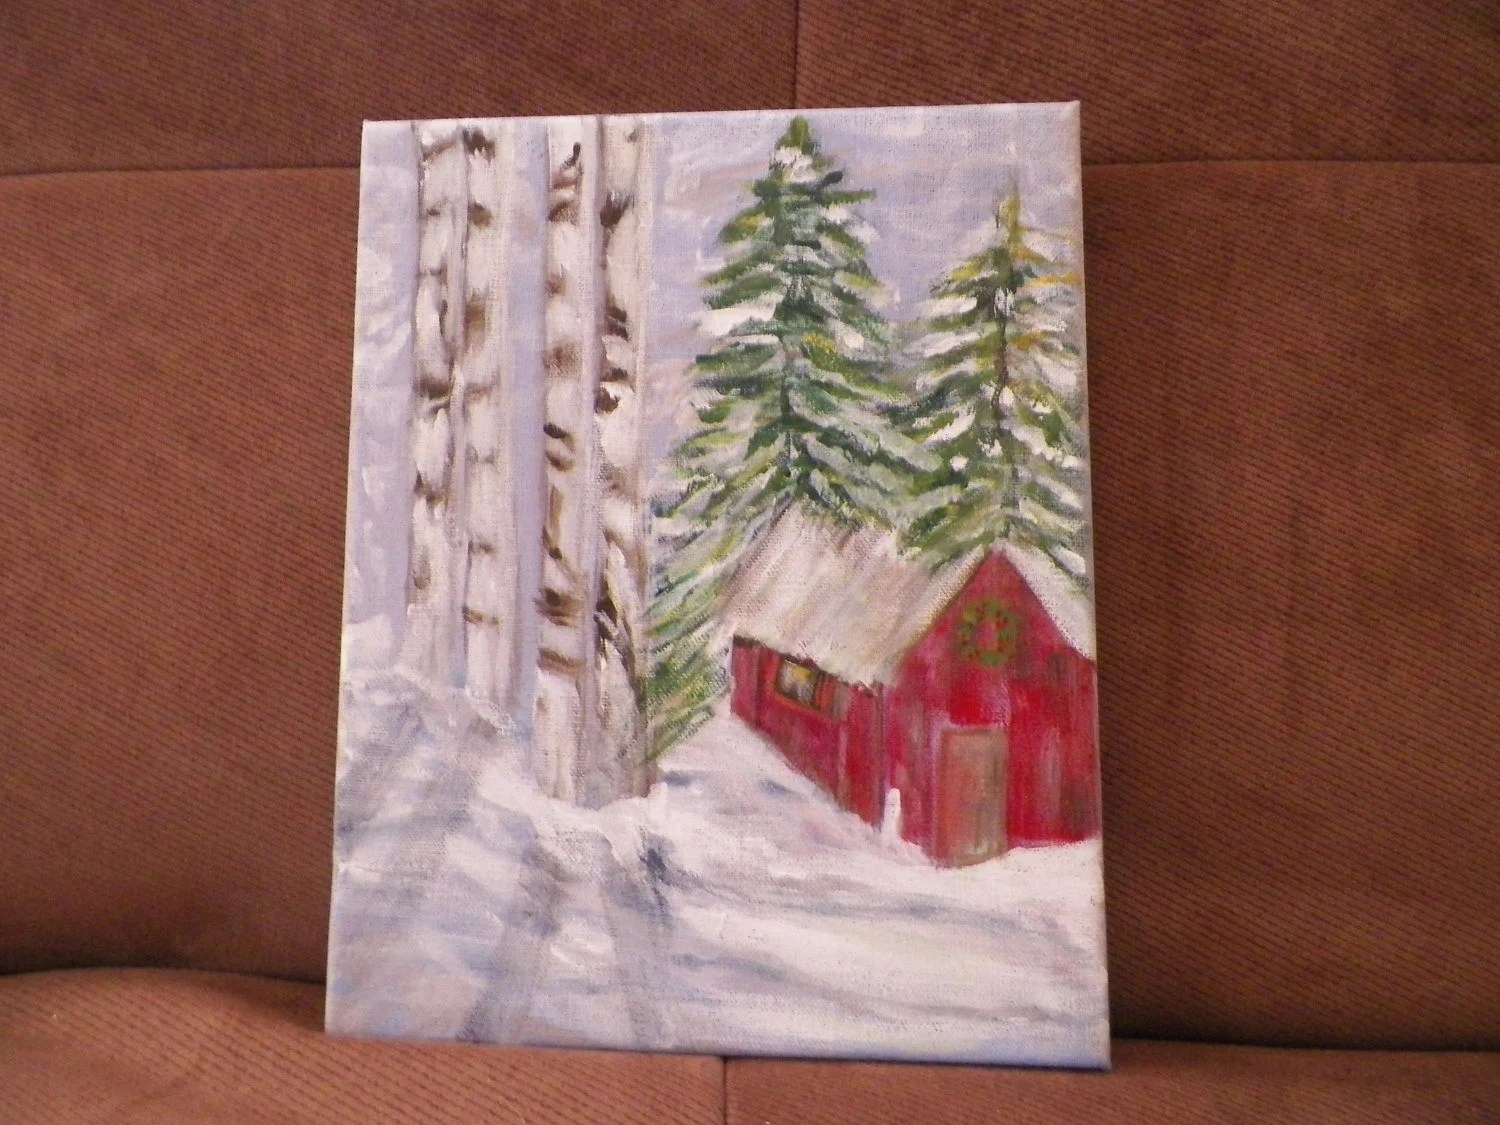 Winter Wonderland Original Acrylic Painting on Linen